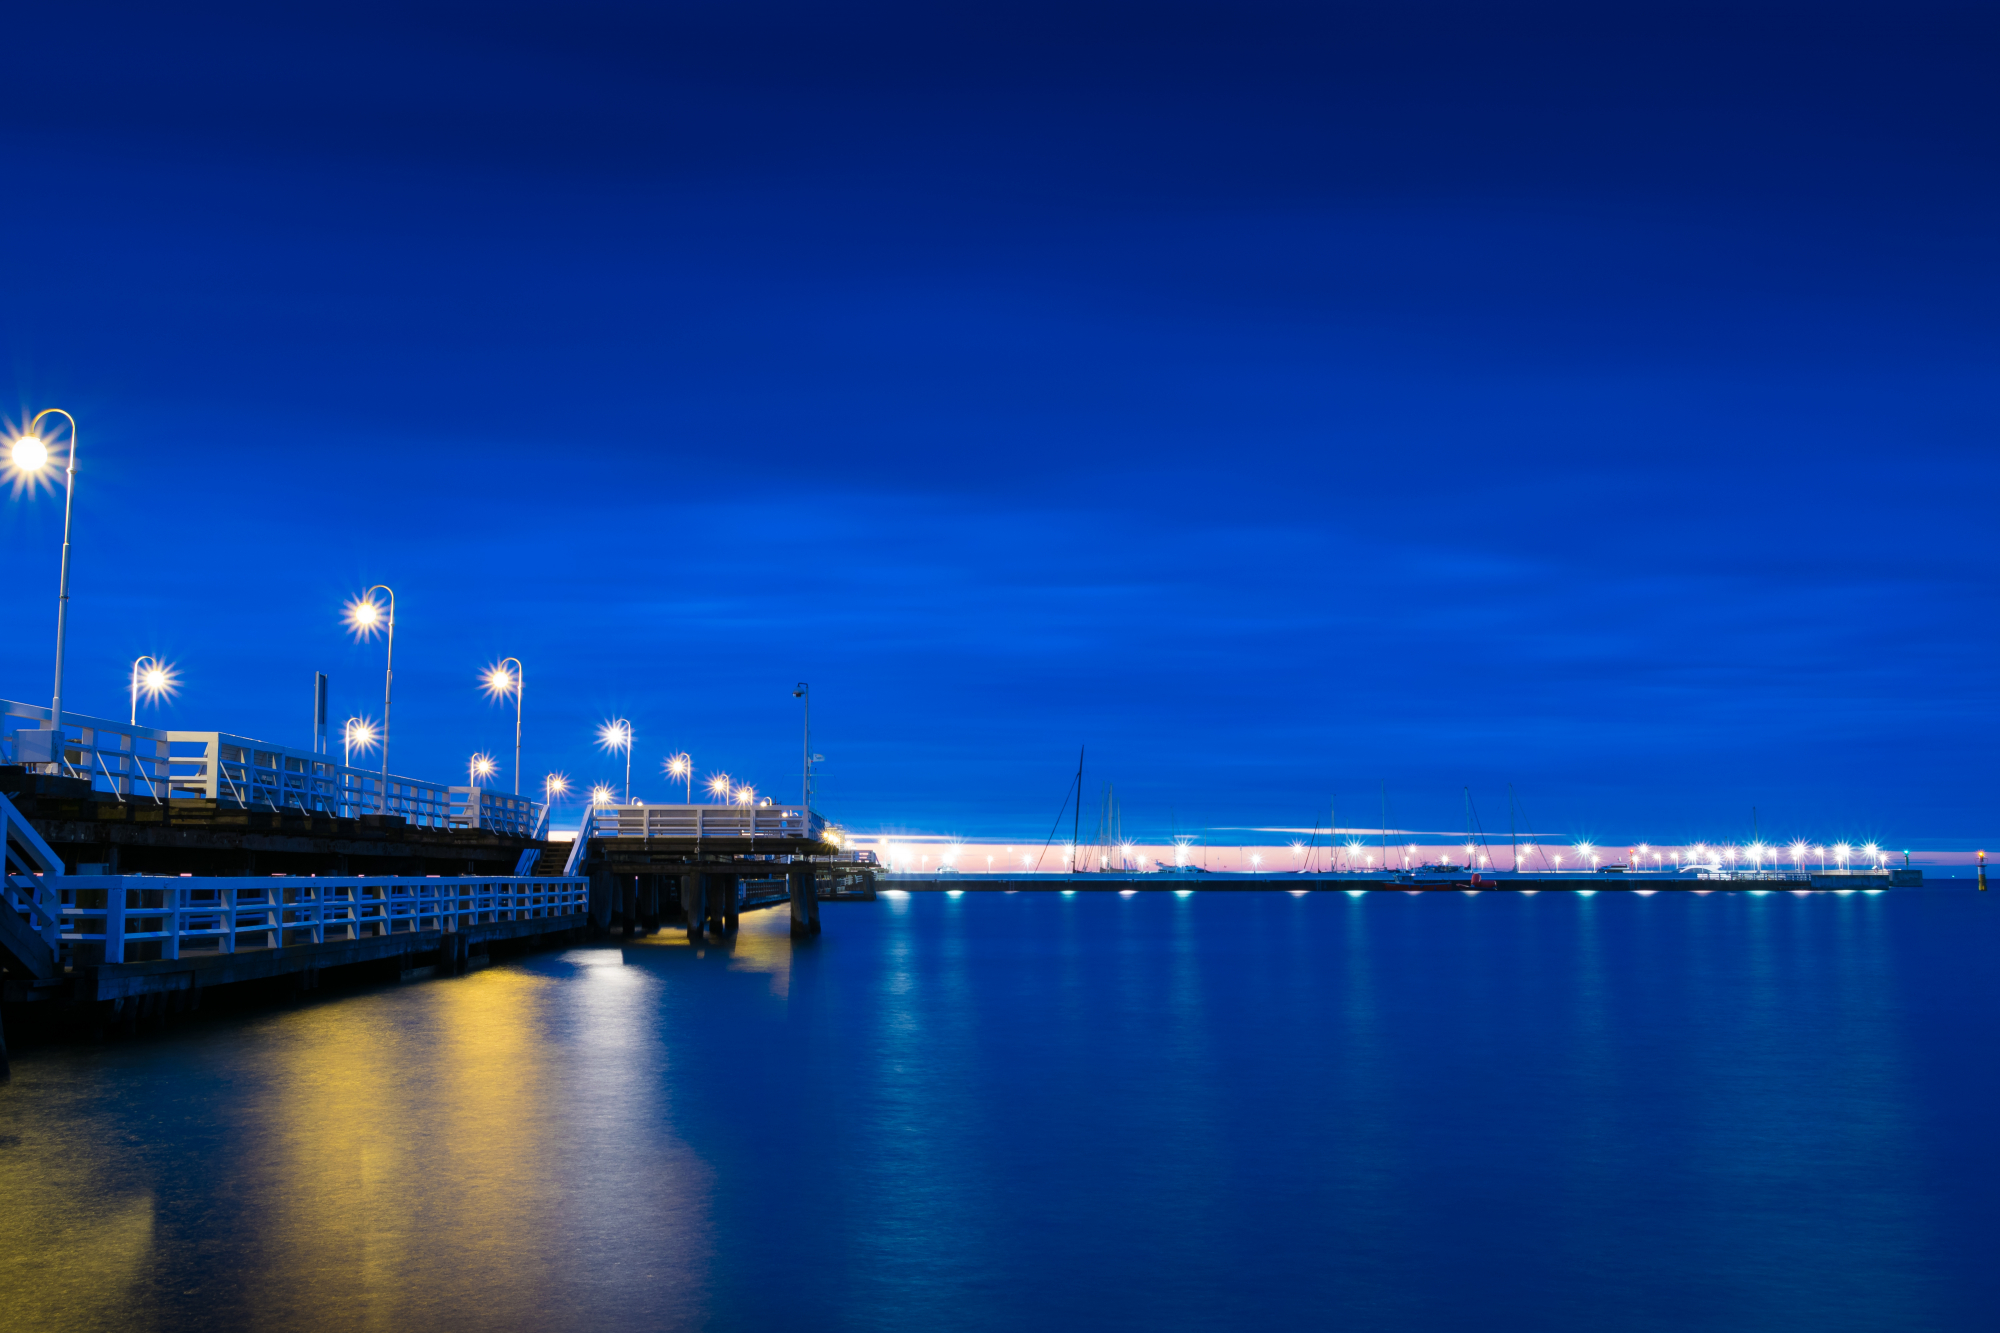 Sopot jetty at  nigh side view